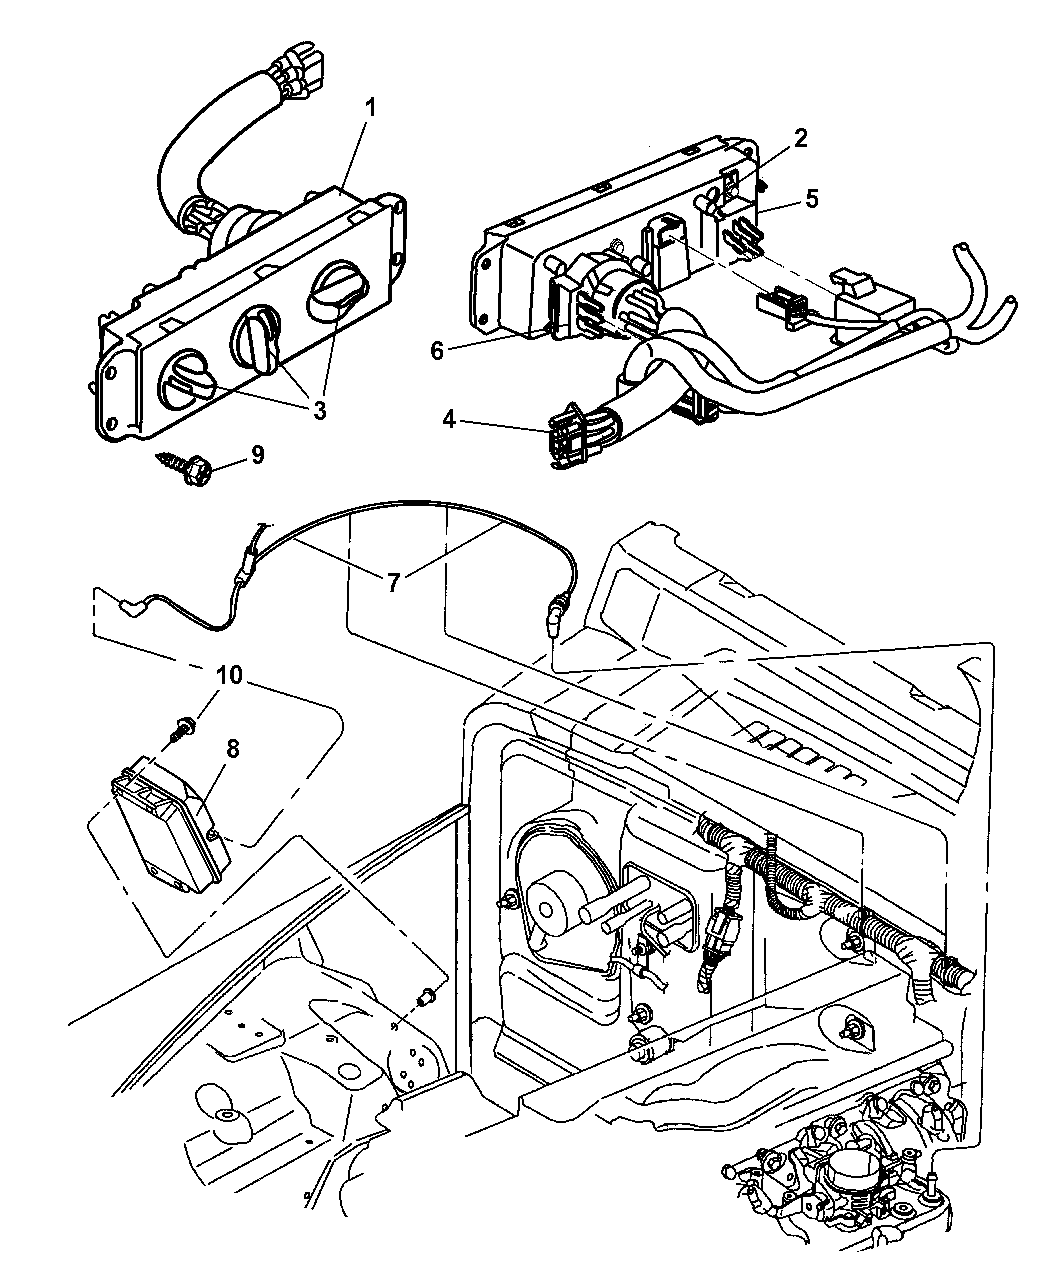 5183281aa genuine jeep knob a c and heater control ro 94 jeep wrangler blower motor wiring diagram 2006 jeep wrangler unlimited rubicon wiring diagram